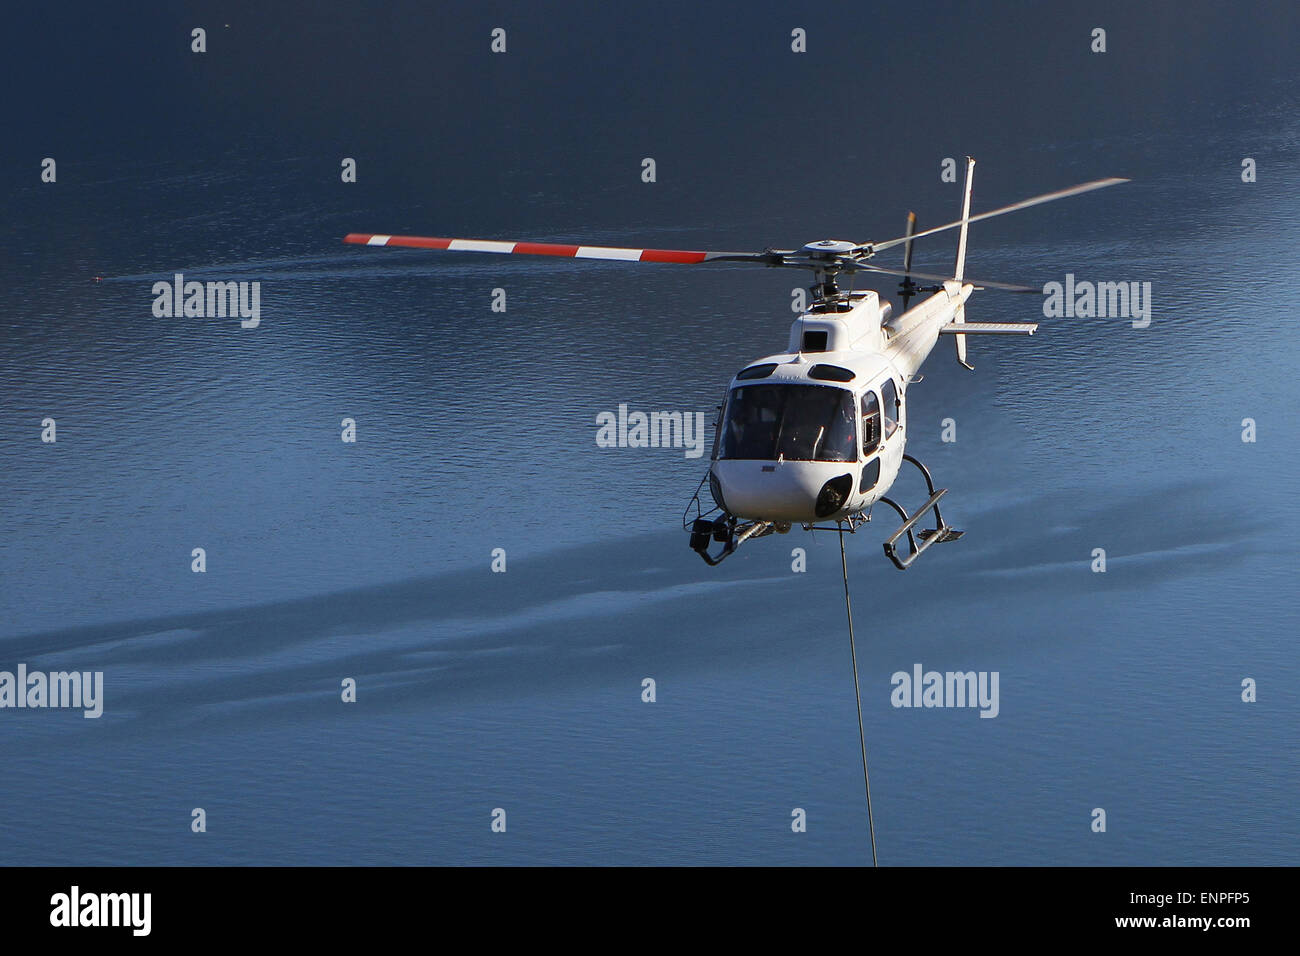 Helicopter used in freight transportation high in the mountains above a lake - Stock Image